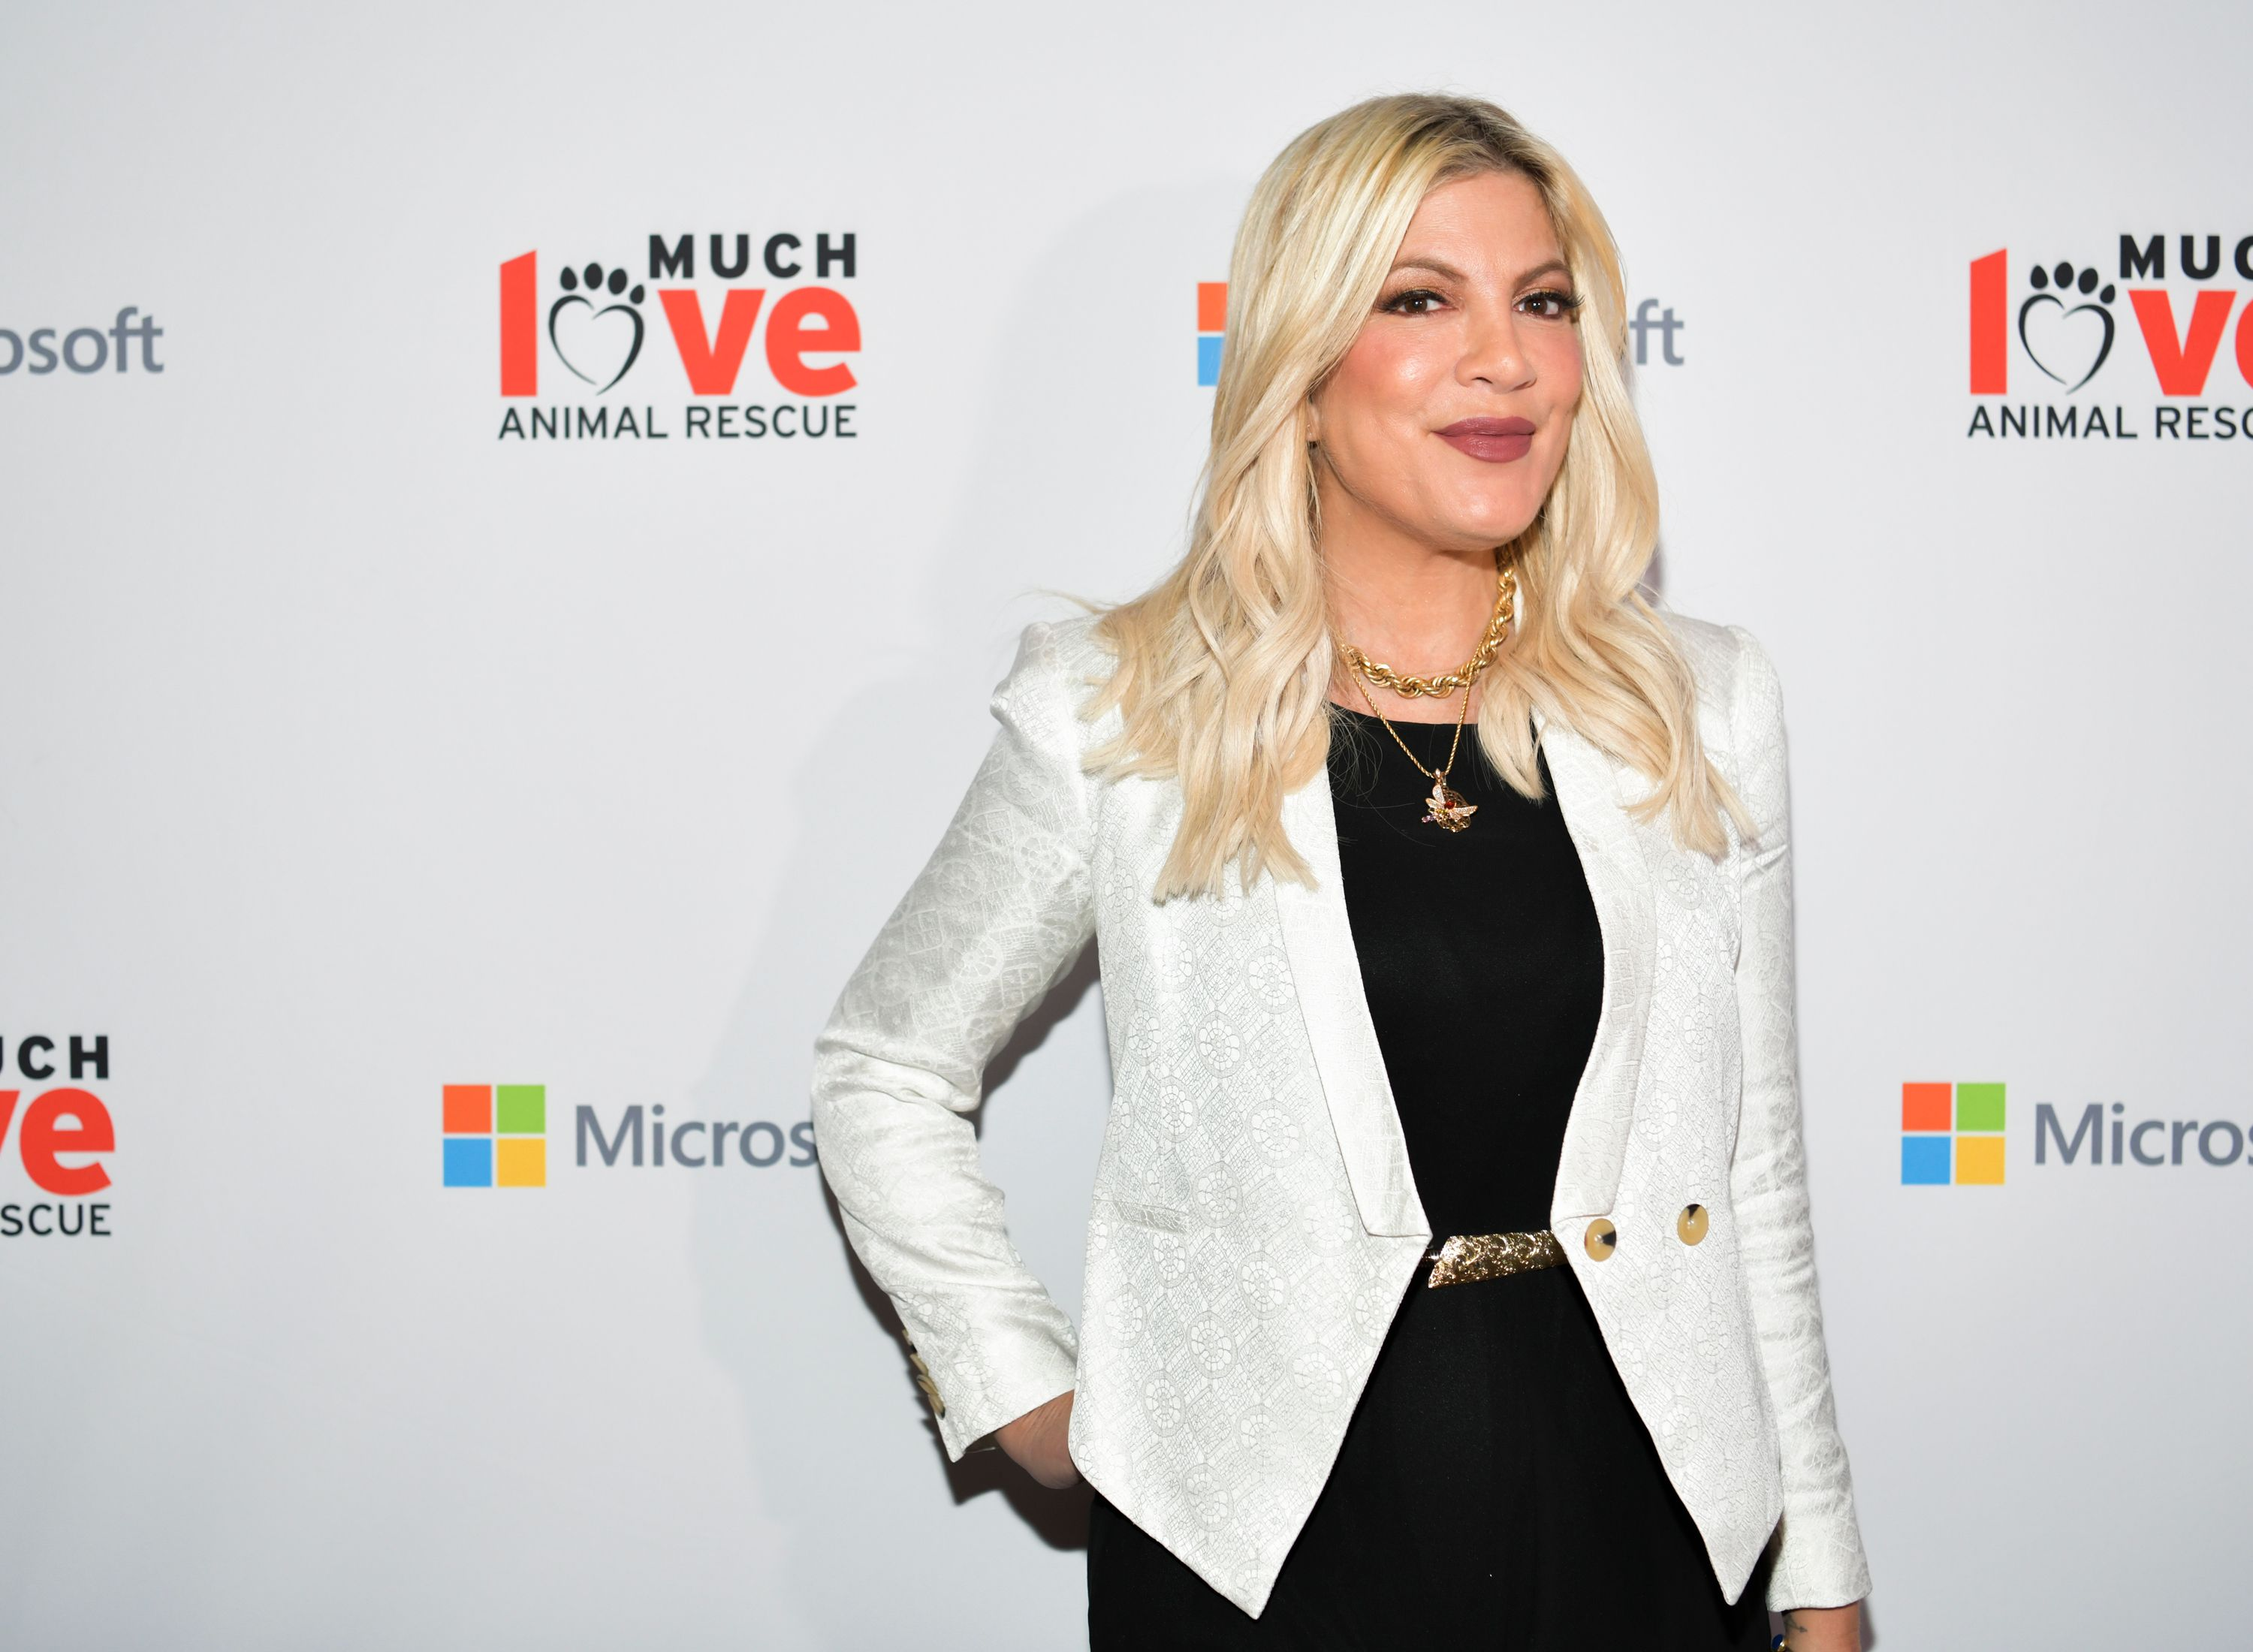 Tori Spelling at an event